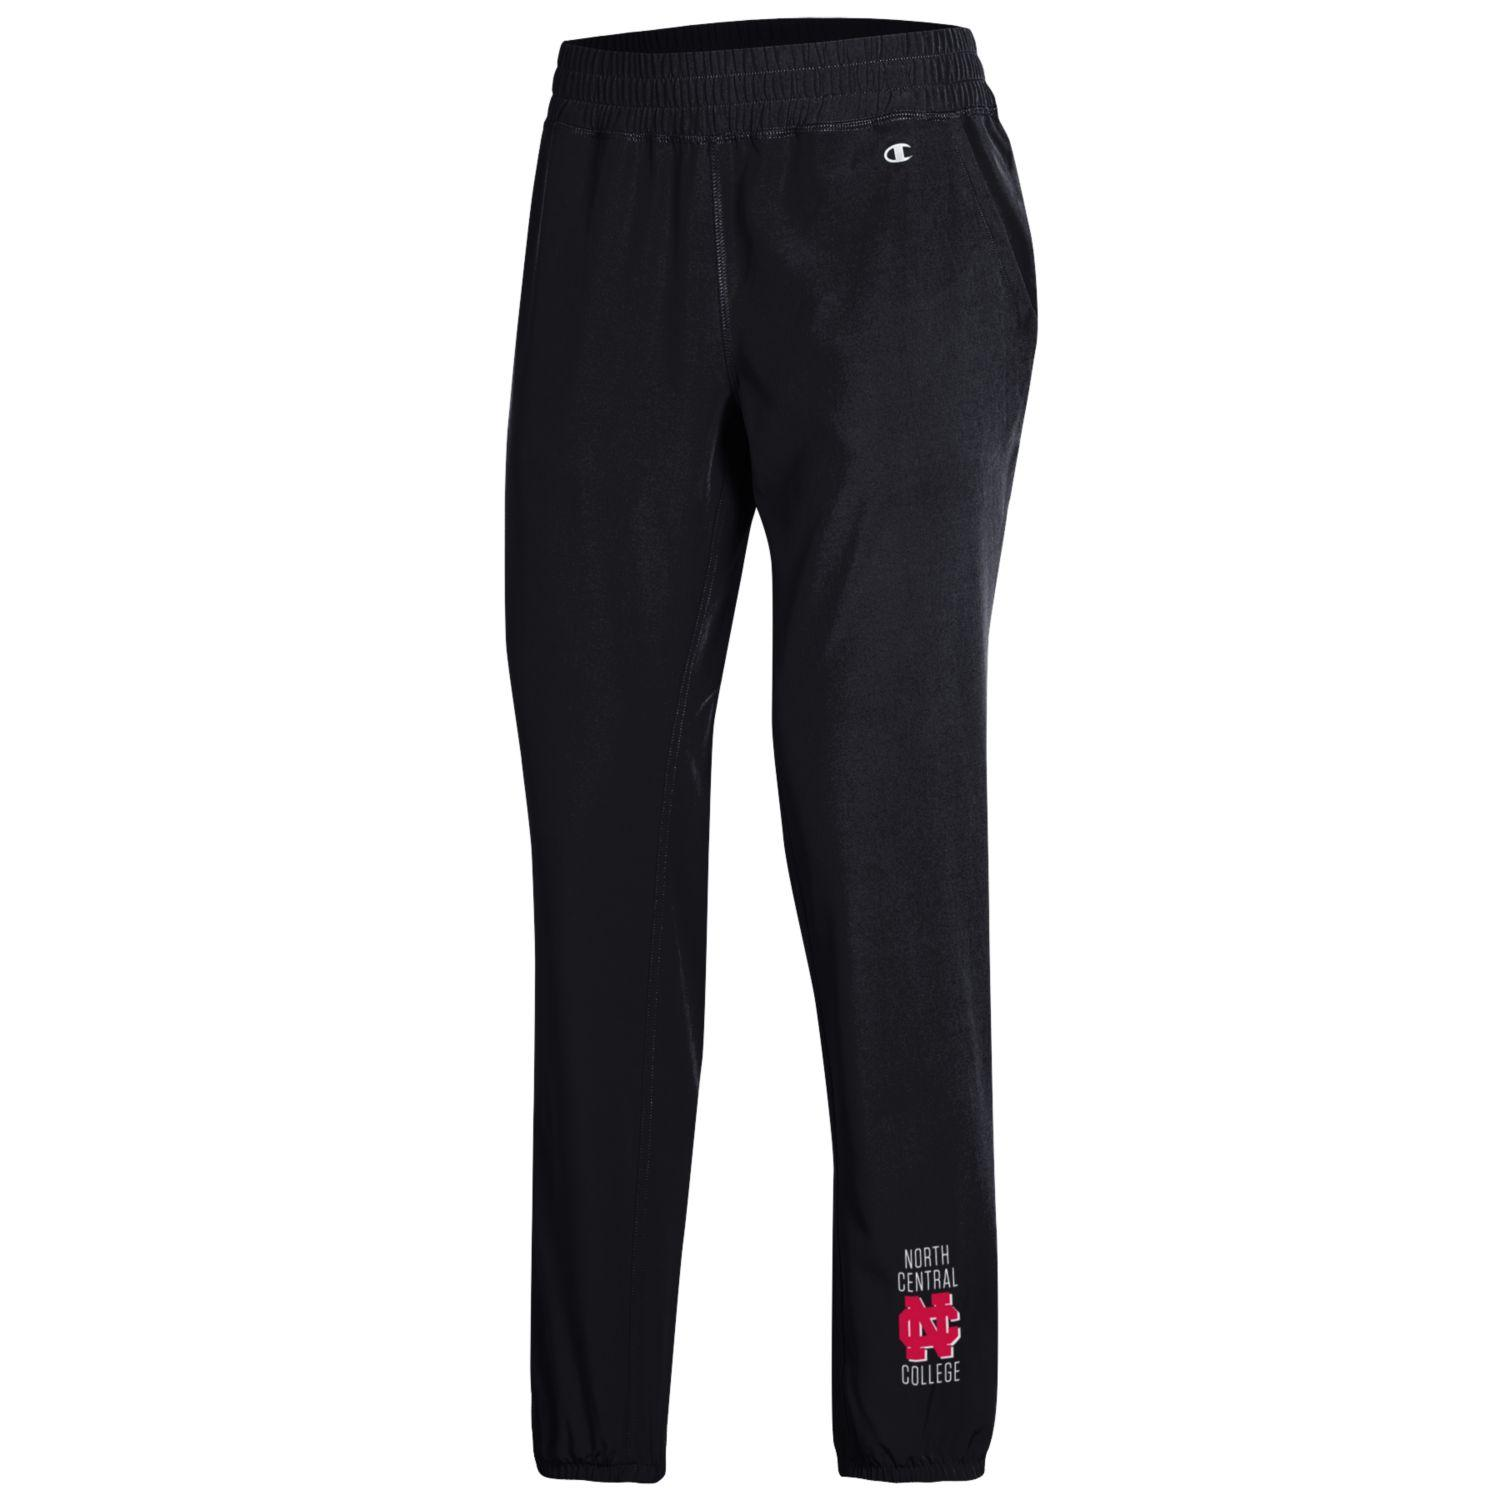 Image for the North Central College Women's Team Stretch Pant by Champion product